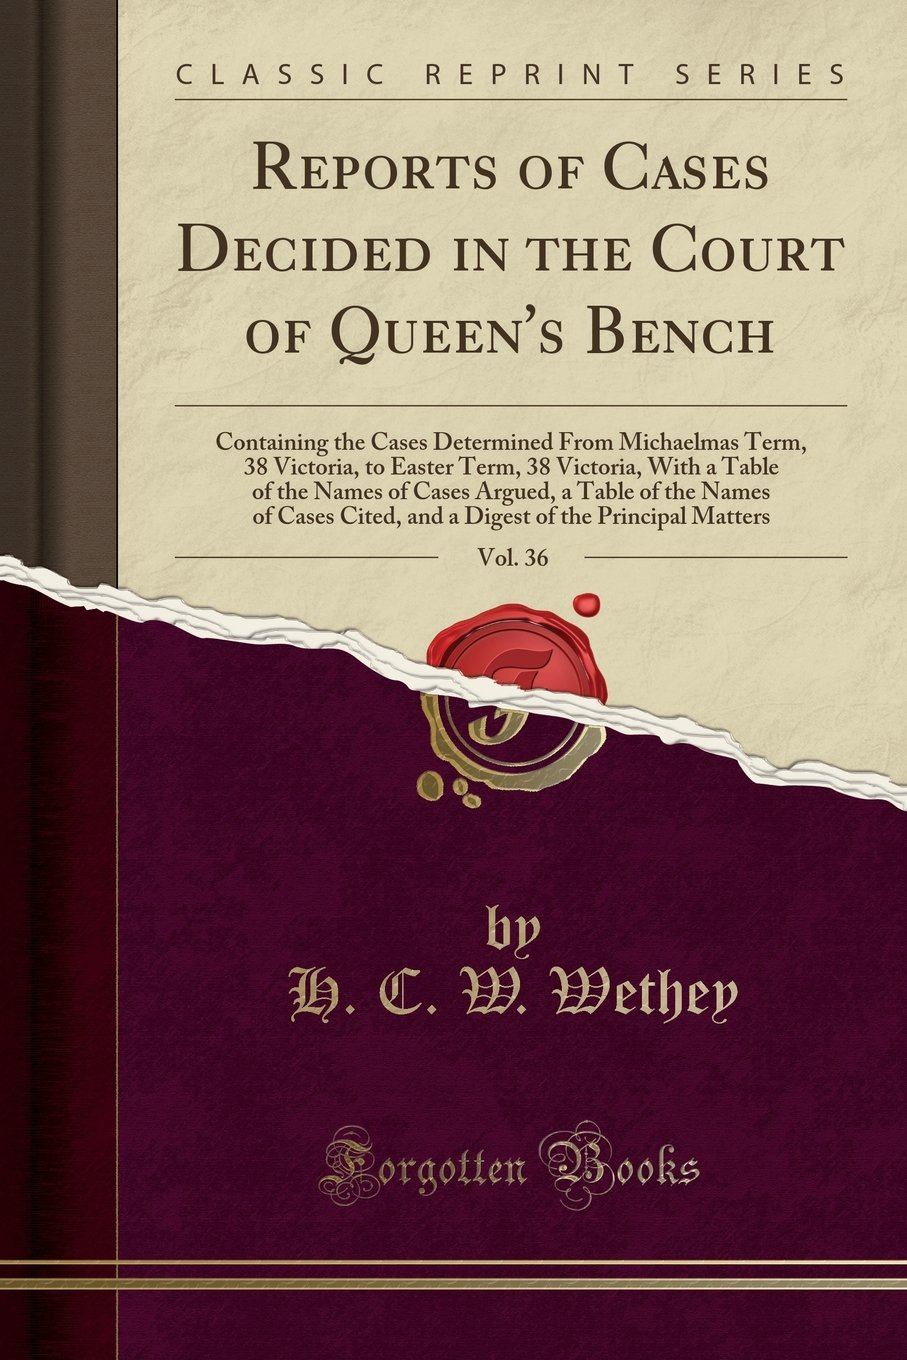 Reports of Cases Decided in the Court of Queen's Bench, Vol. 36: Containing the Cases Determined From Michaelmas Term, 38 Victoria, to Easter Term, 38 ... of the Names of Cases Cited, and a Digest o ebook